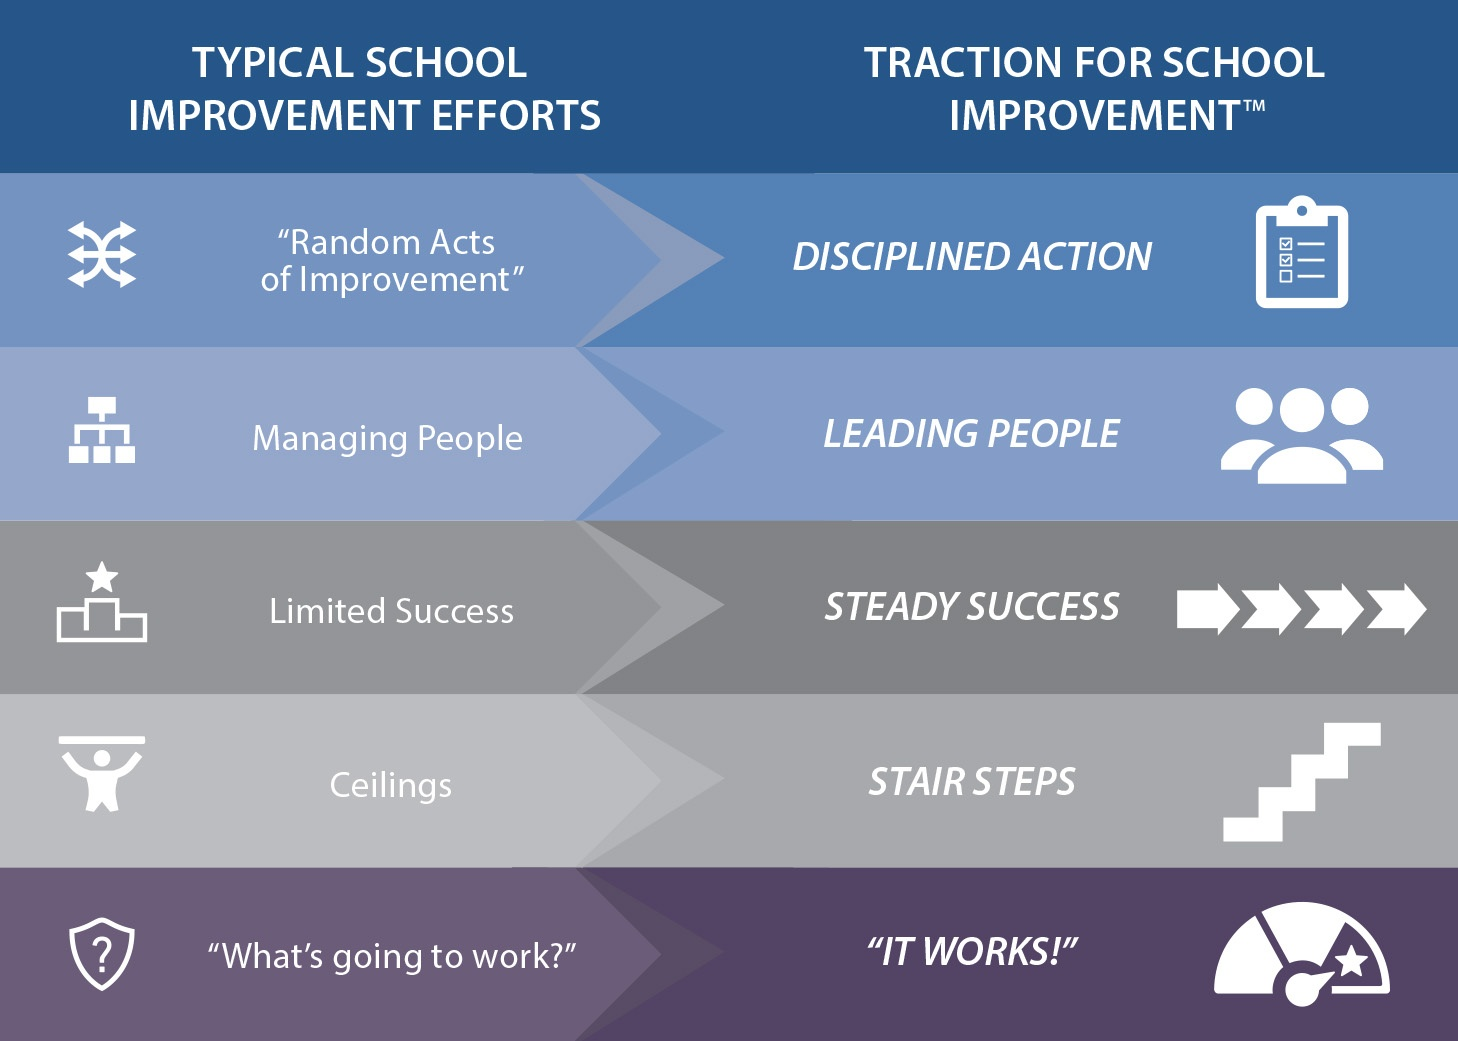 TRACTION for School Improvement - What happens with TSI